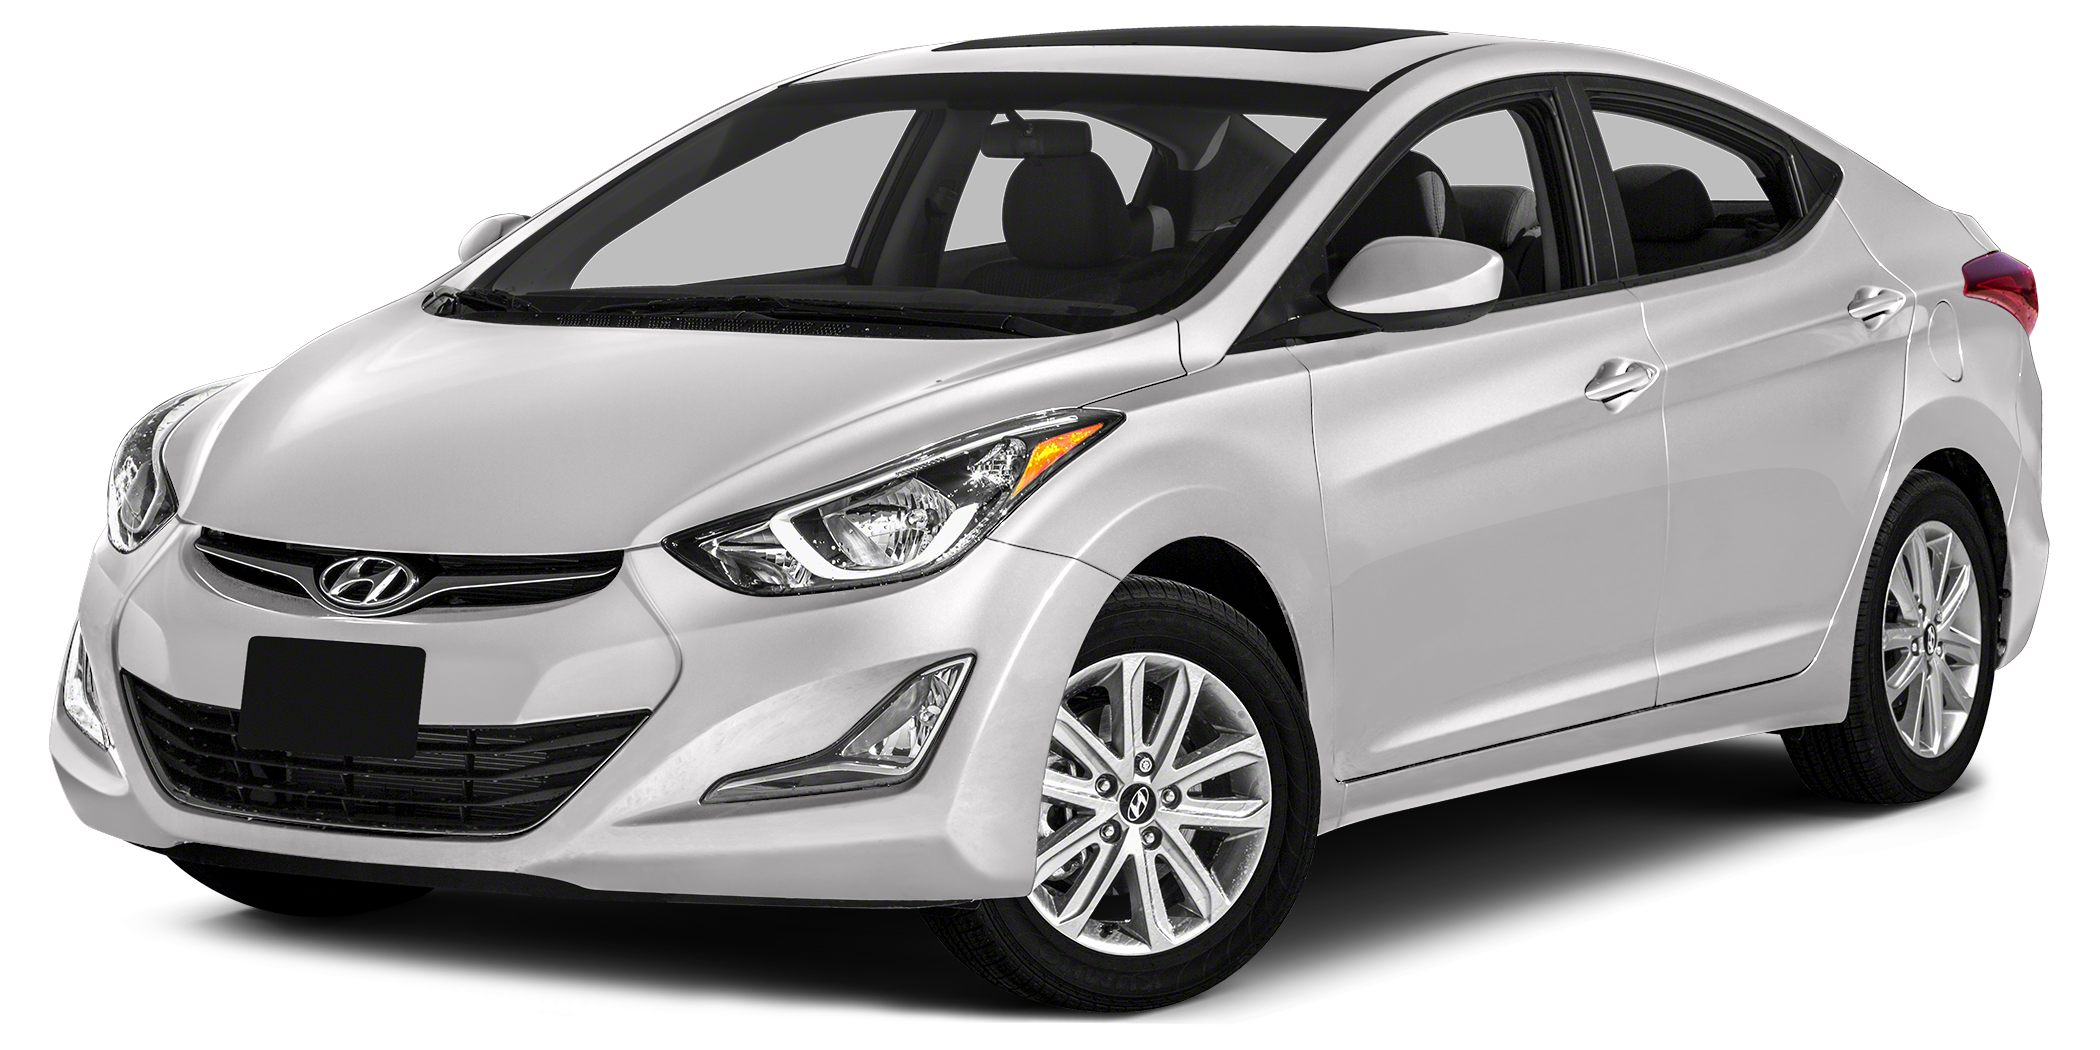 2016 Hyundai Elantra SE Excellent gas mileage very peppy drives nicely solidly built small car